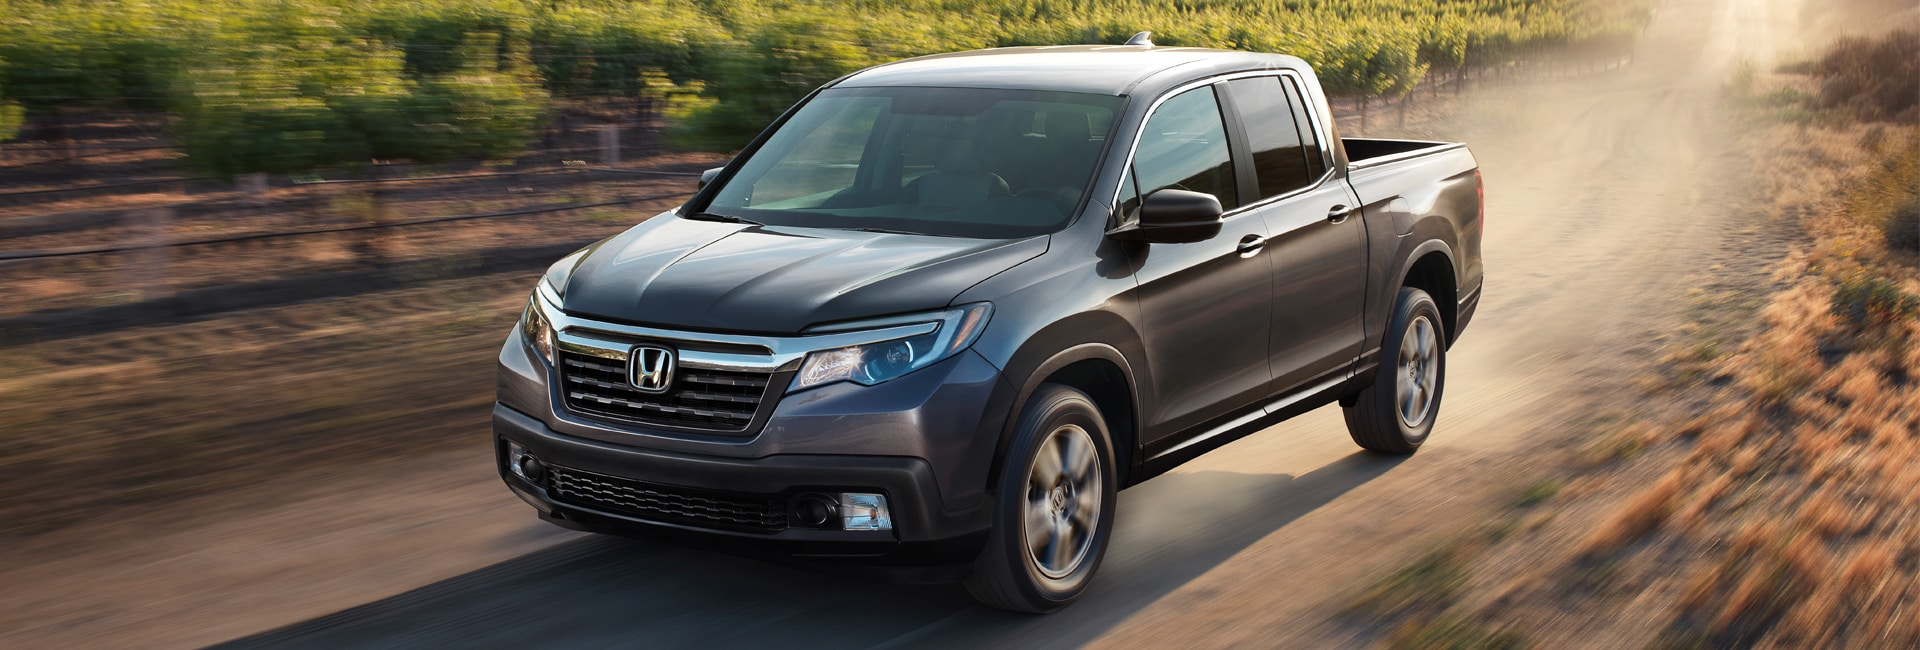 New Honda Ridgeline Exterior Off Road